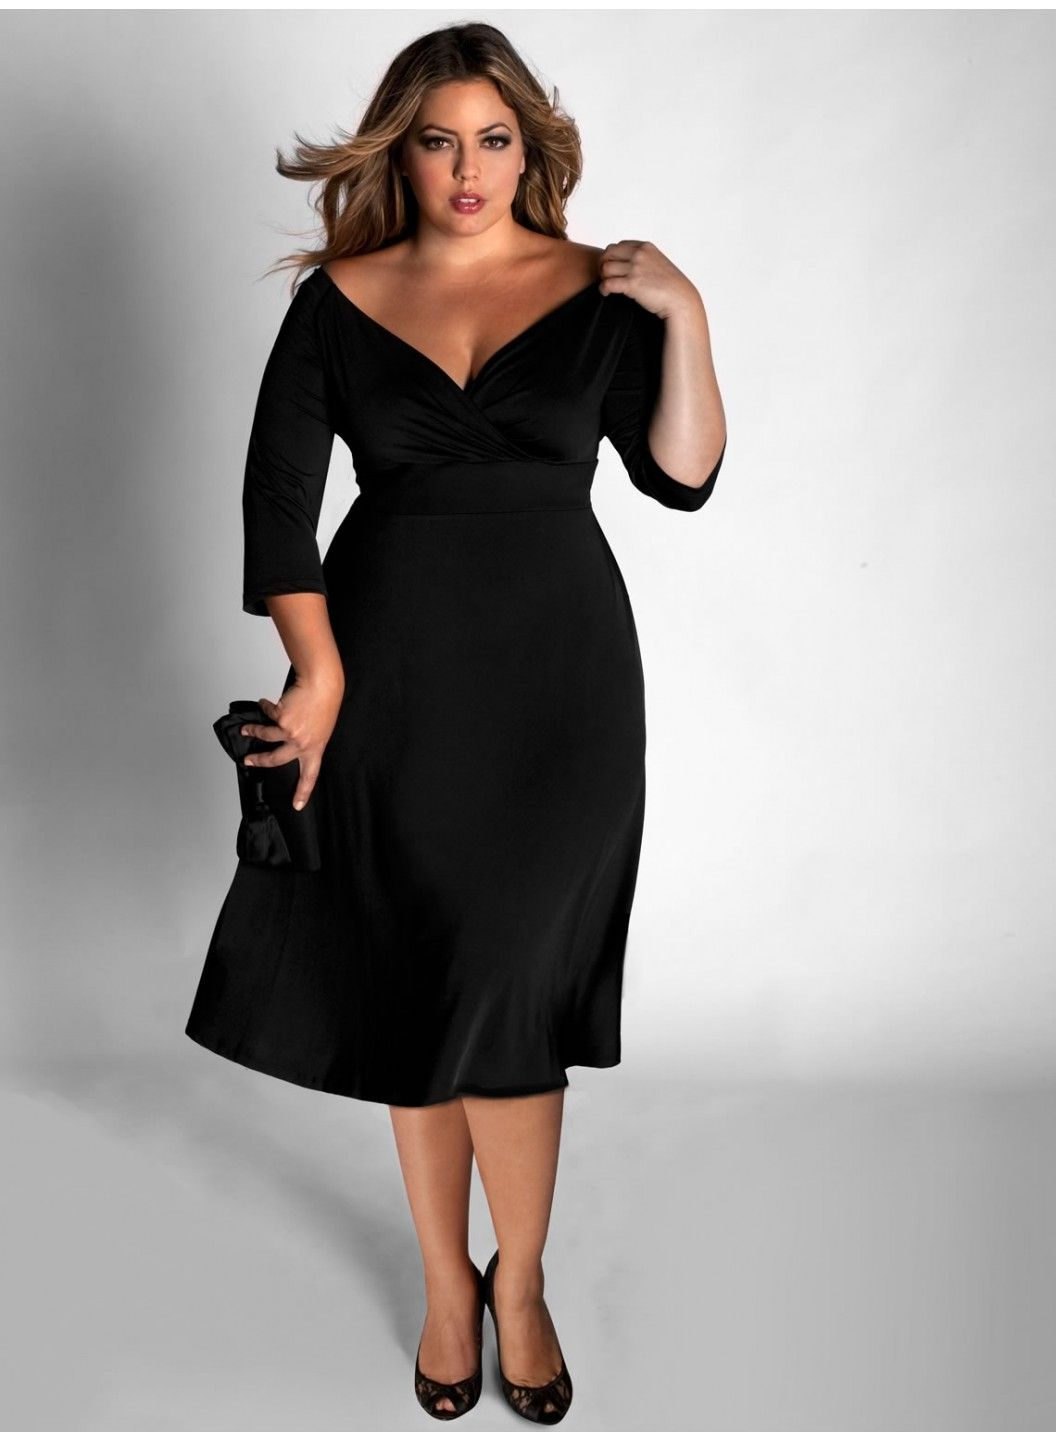 1000  images about Plus size on Pinterest  Business professional ...